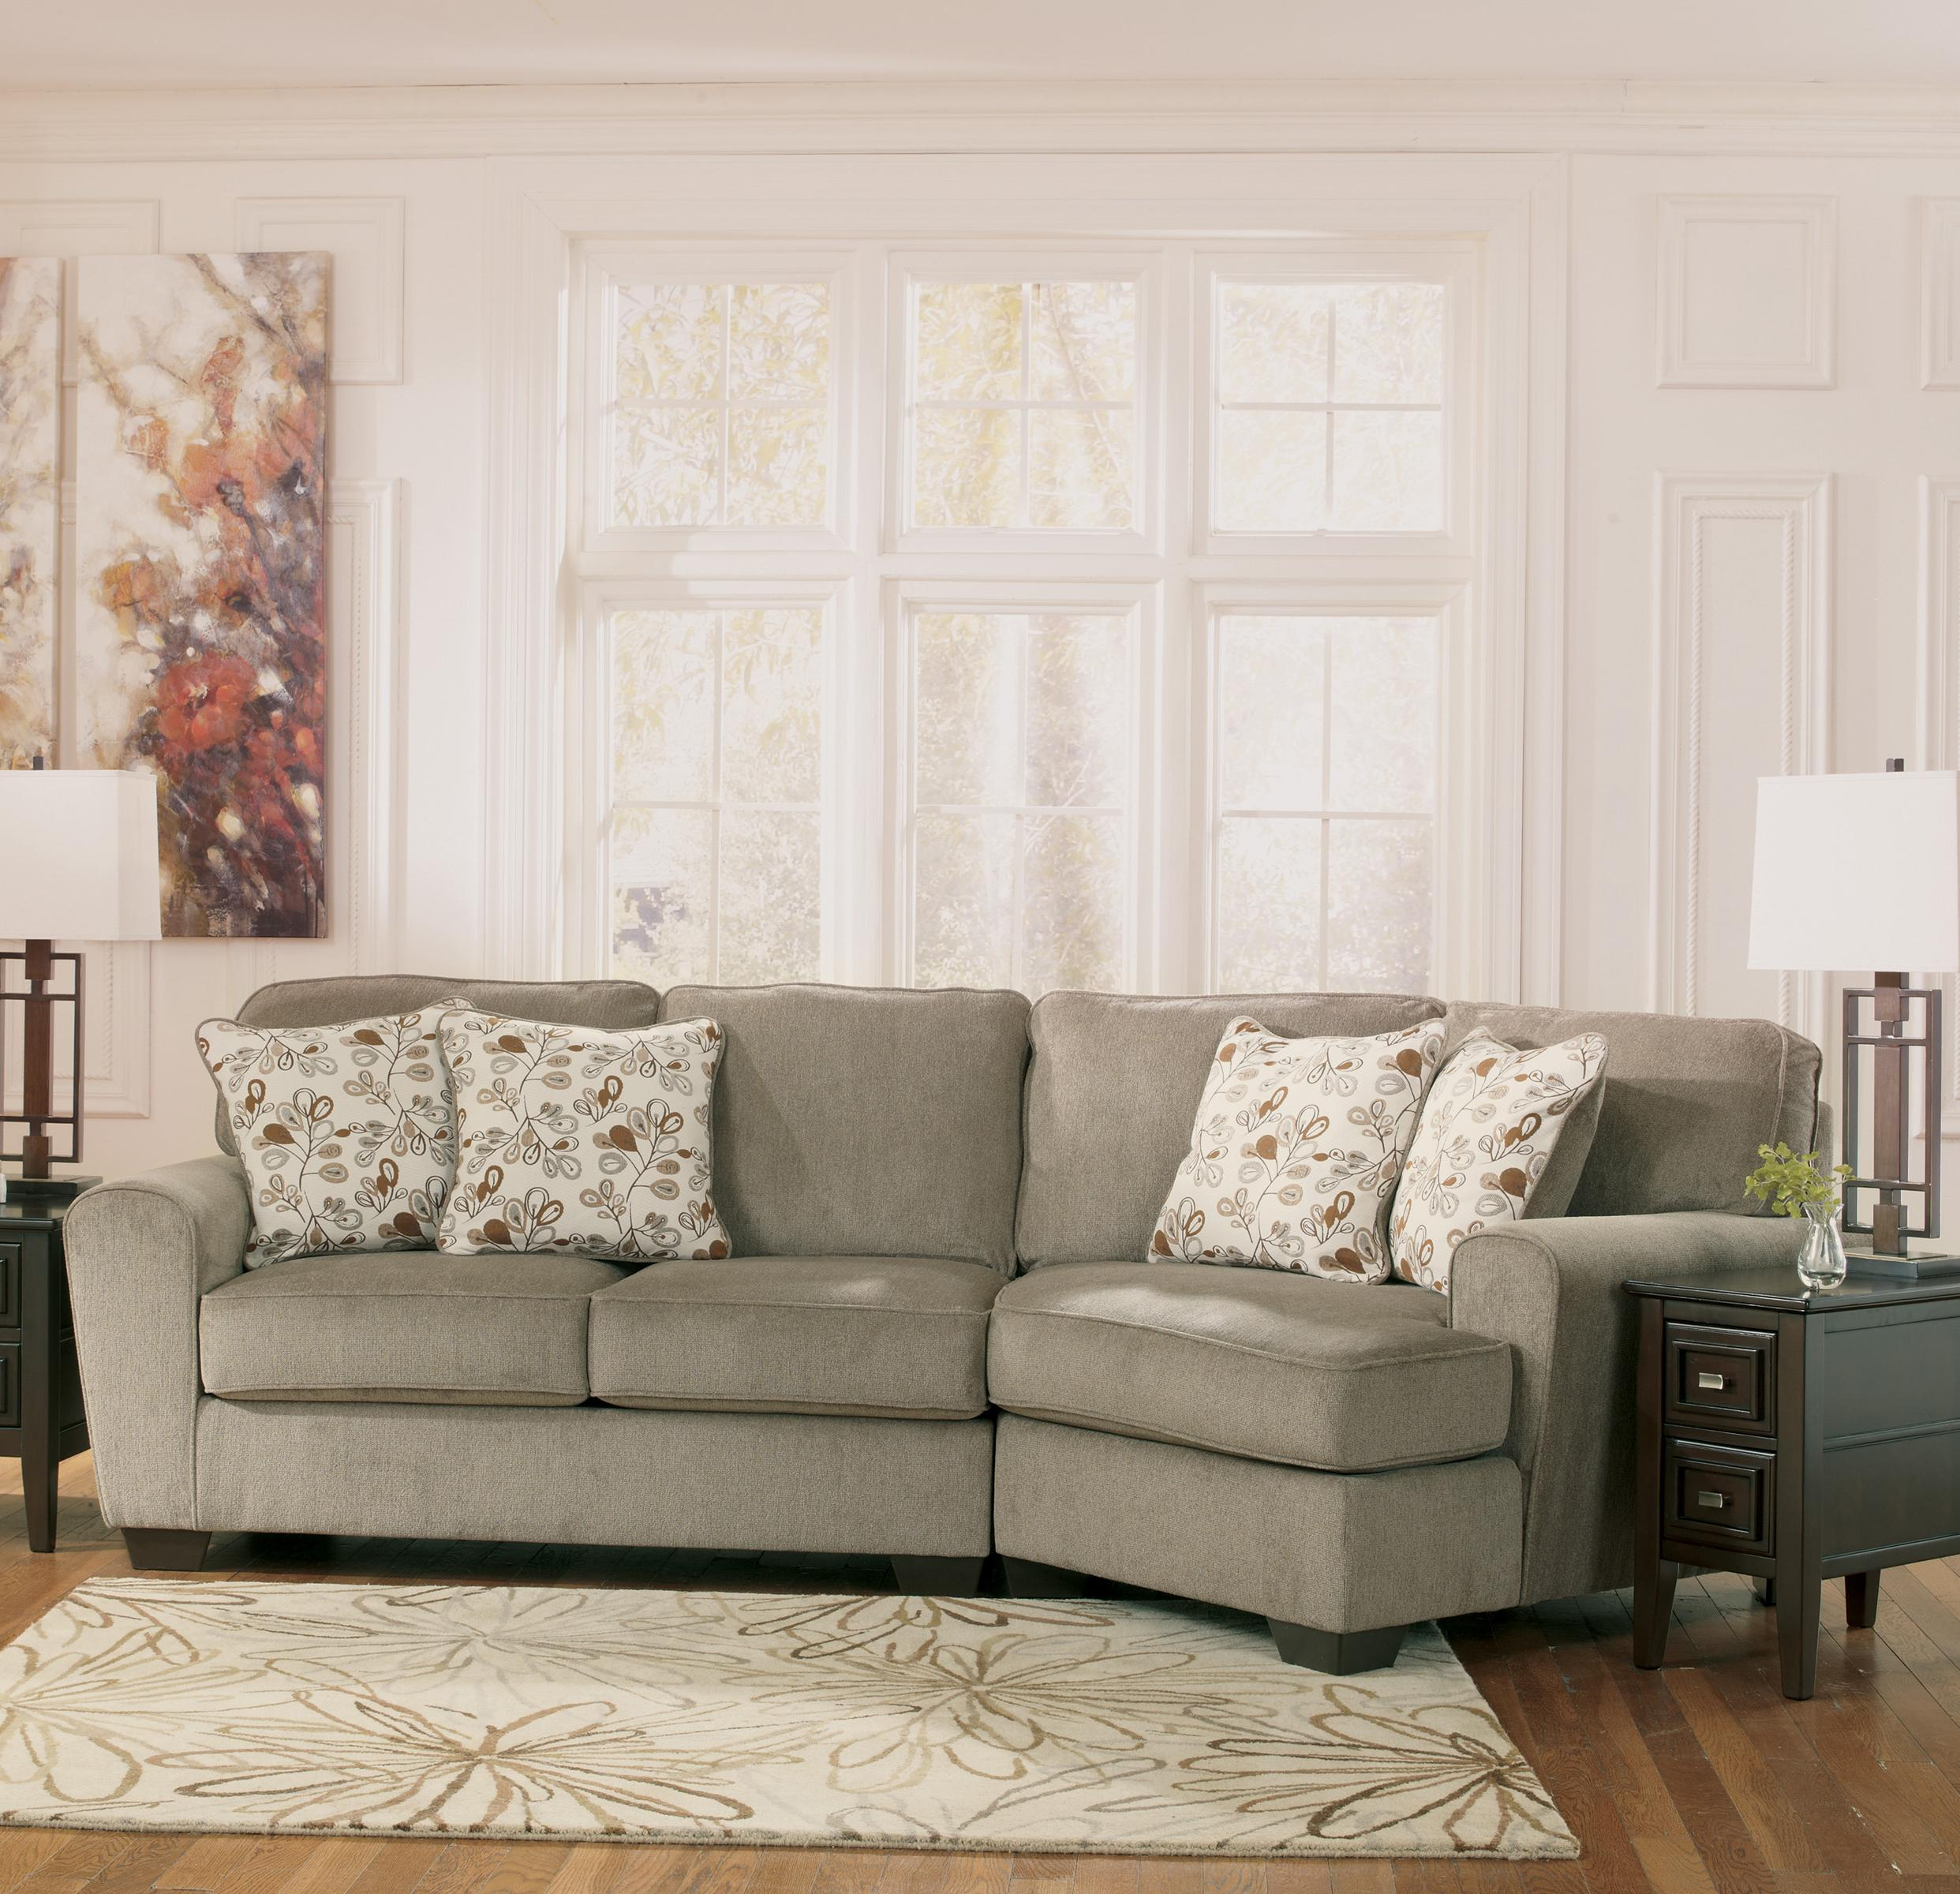 Ashley furniture patola park patina 2 piece sectional for Small sectional sofa with cuddler